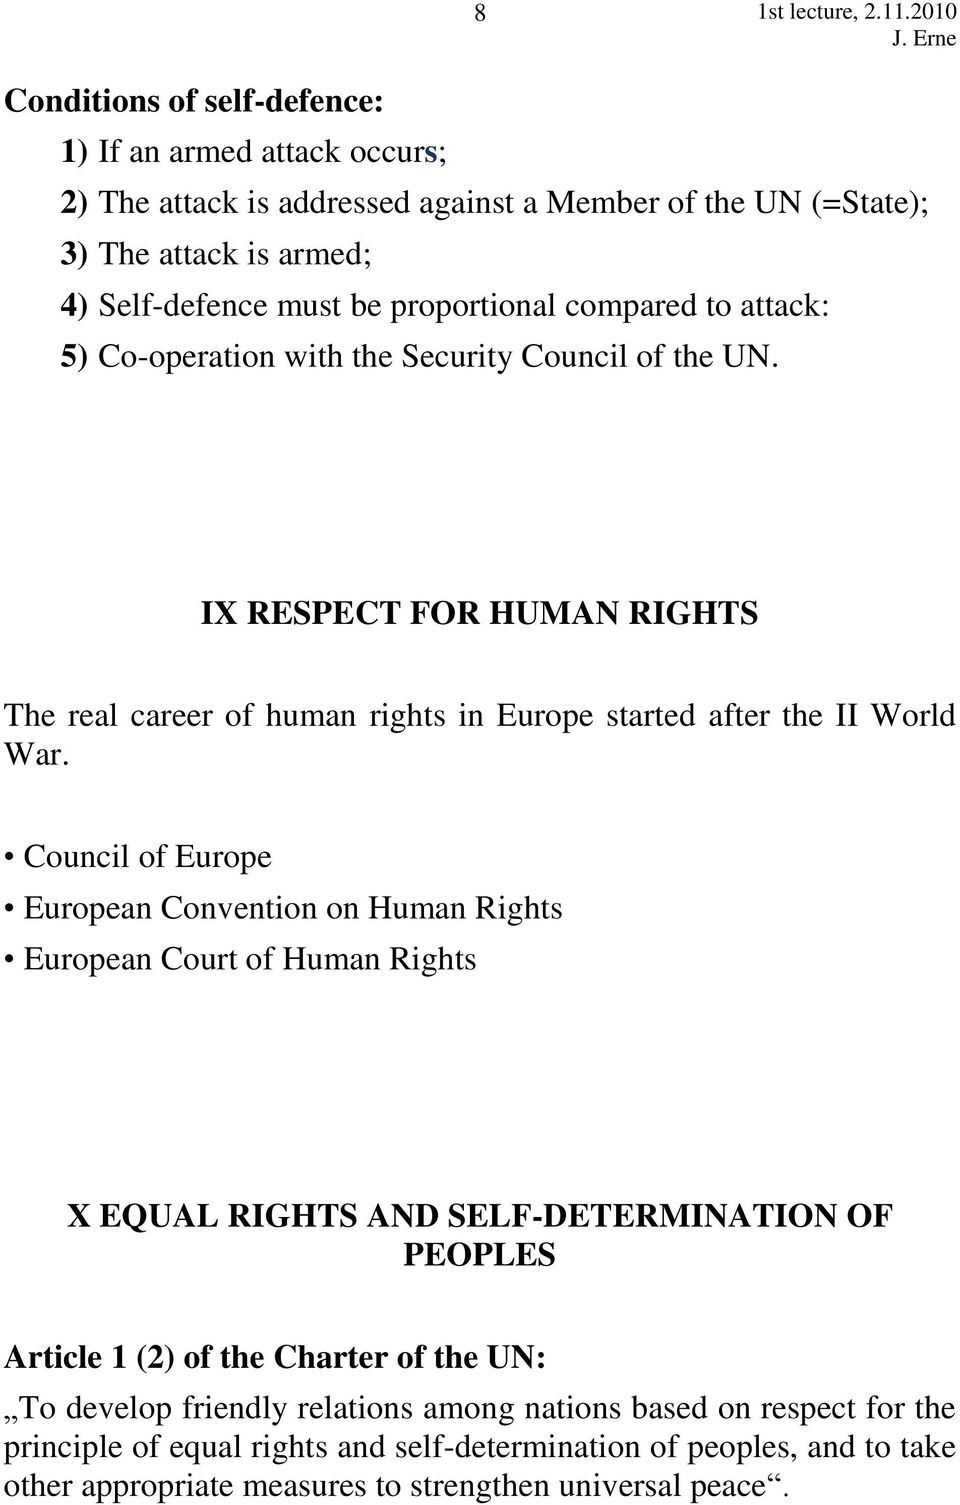 IX RESPECT FOR HUMAN RIGHTS The real career of human rights in Europe started after the II World War.